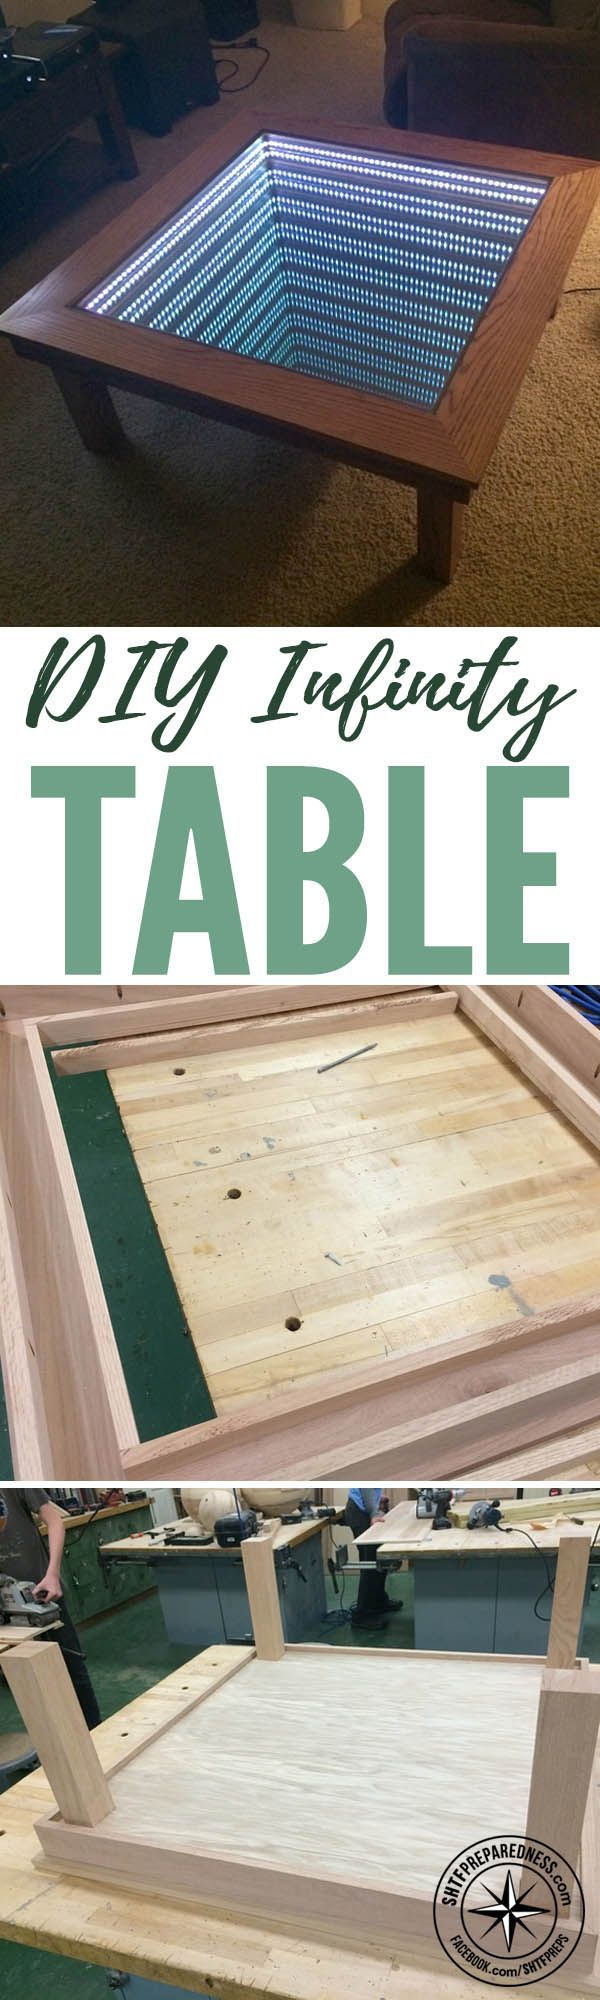 DIY Infinity Table – DIY woodworking projects are a fun hobby and can be a … #diywoodprojects #hobby #woodworking projects #infin …